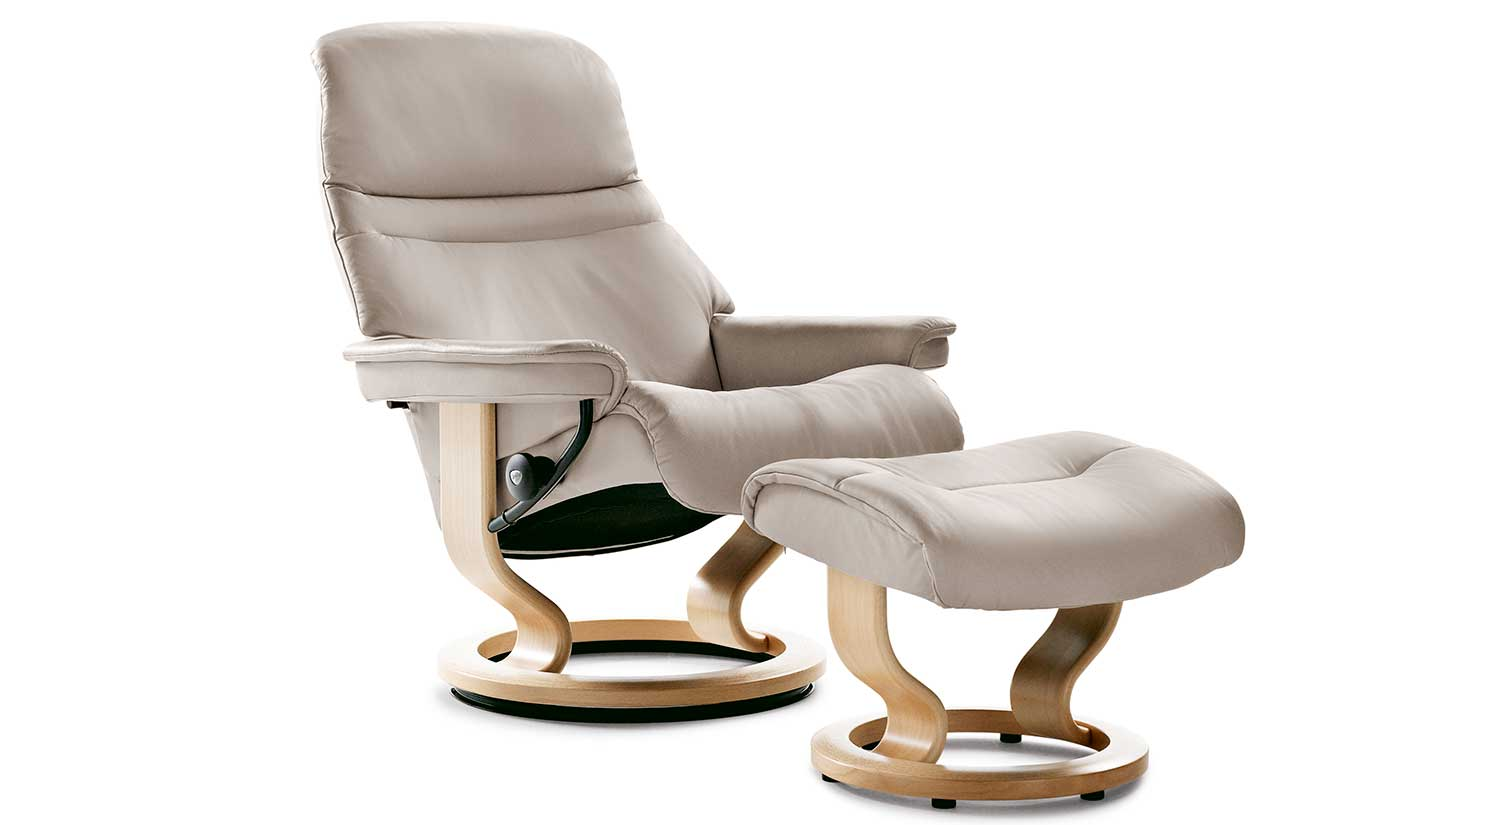 Stressless Chair Prices Circle Furniture Stressless Sunrise Chair Ekornes